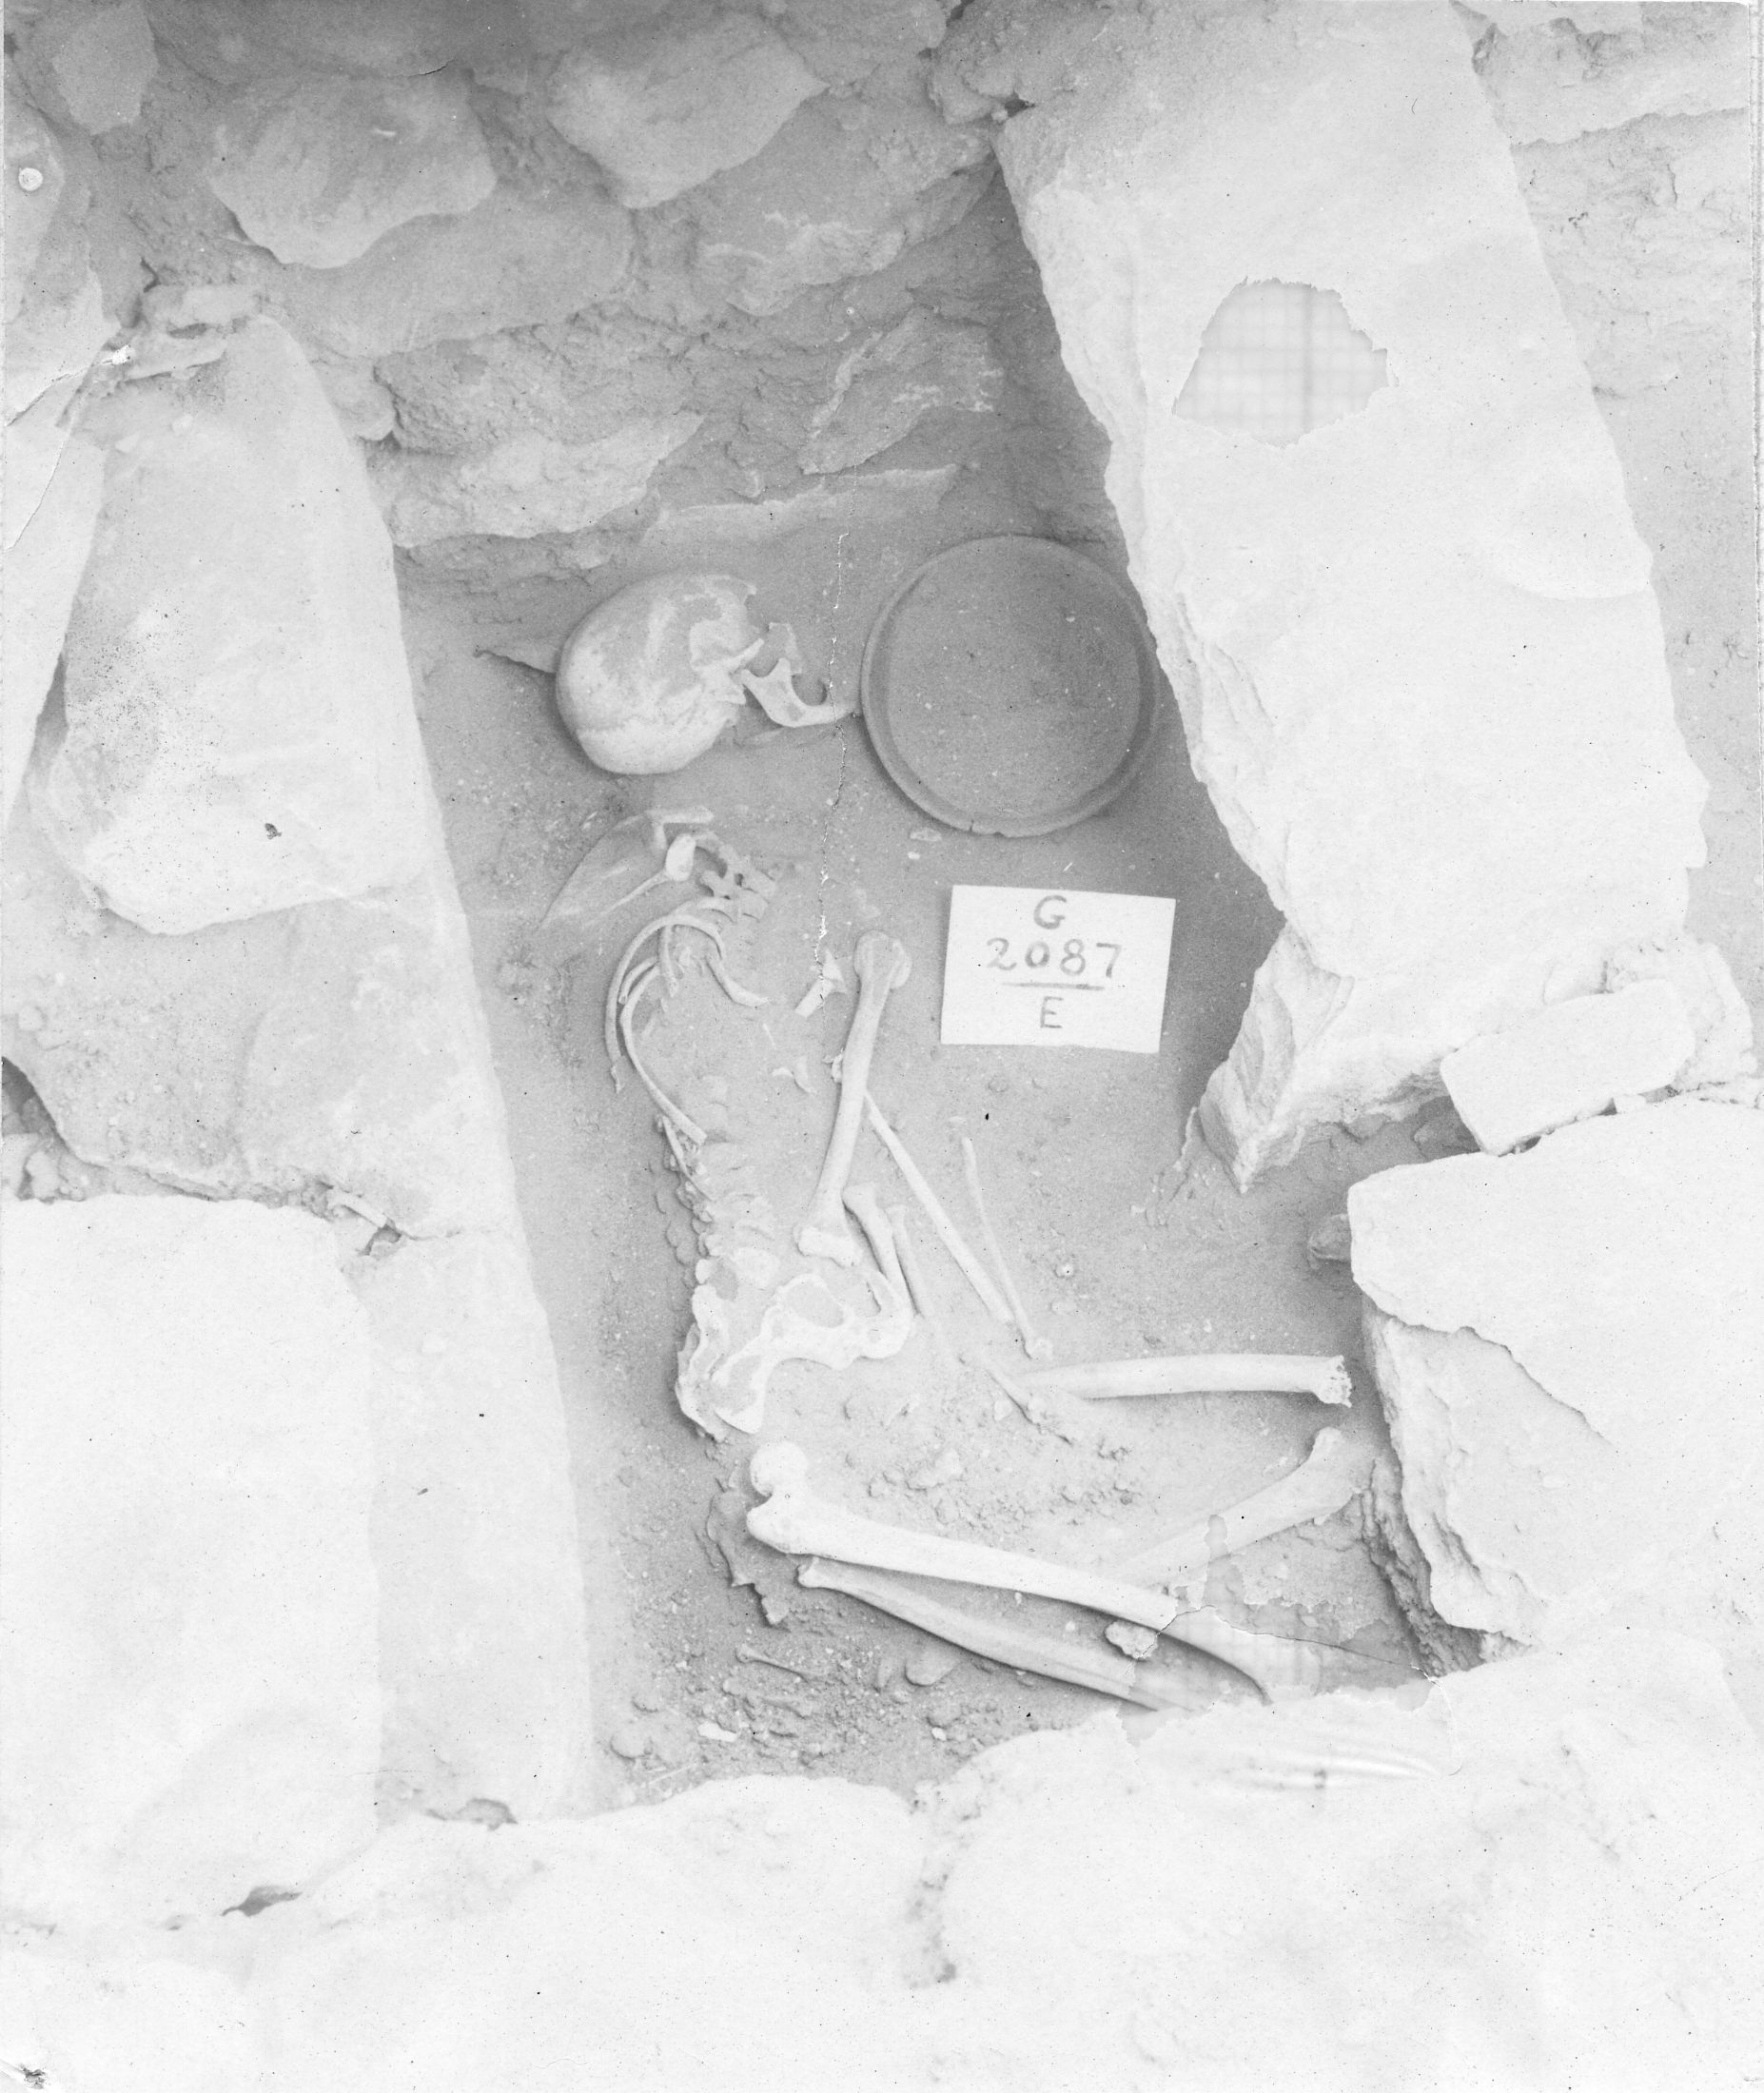 Western Cemetery: Site: Giza; view: G 3087